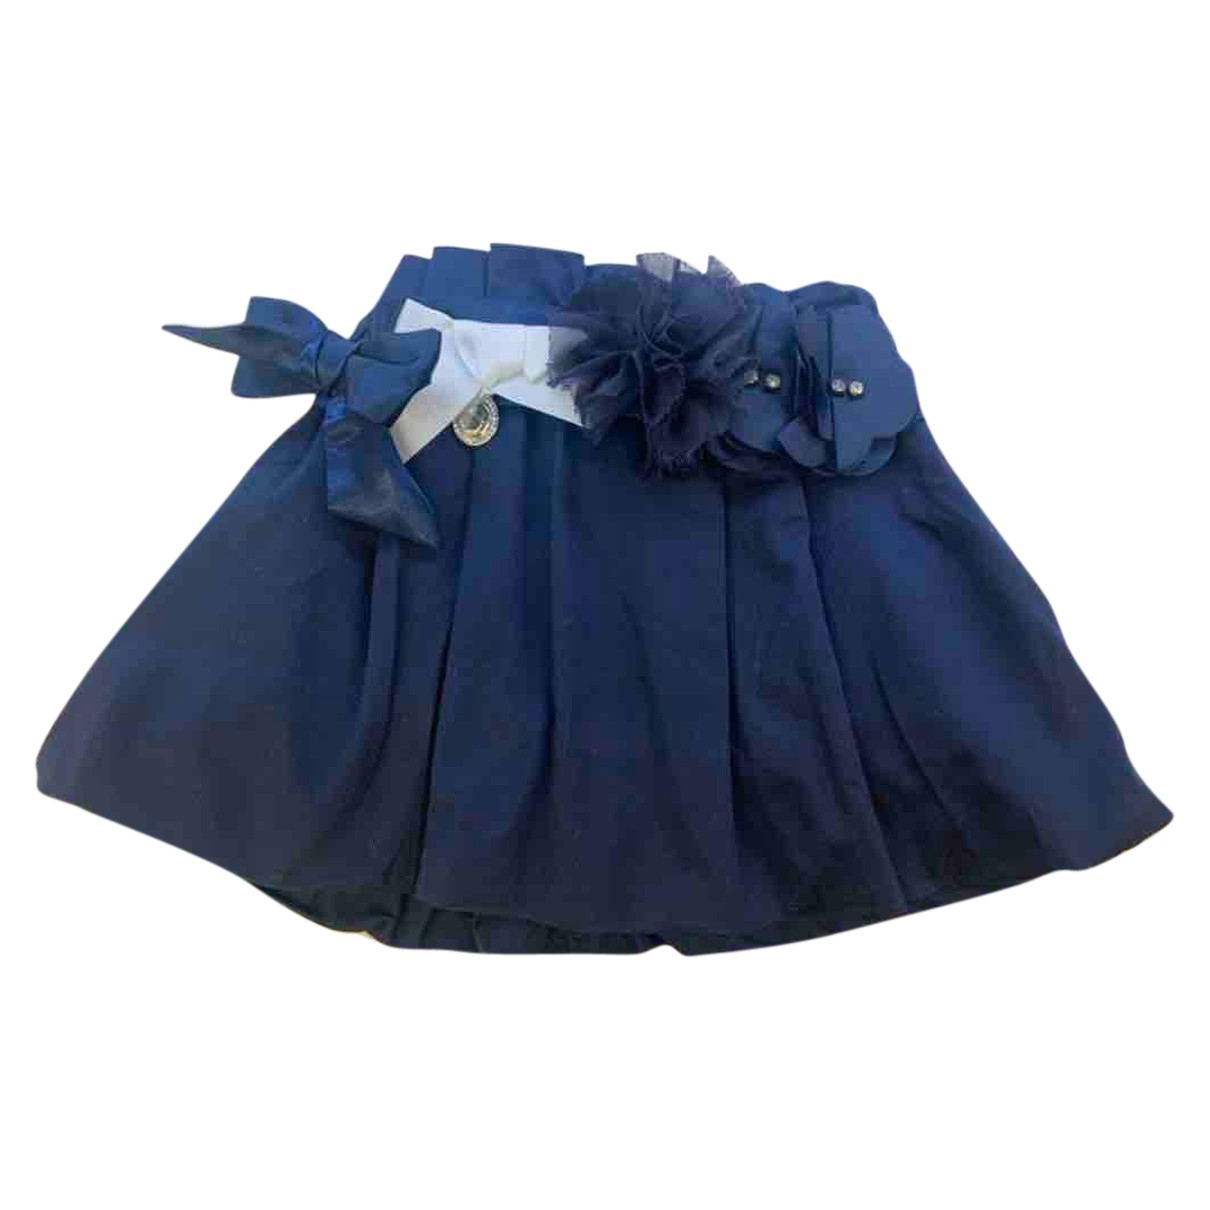 Byblos N Blue Cotton skirt for Kids 2 years - until 34 inches UK